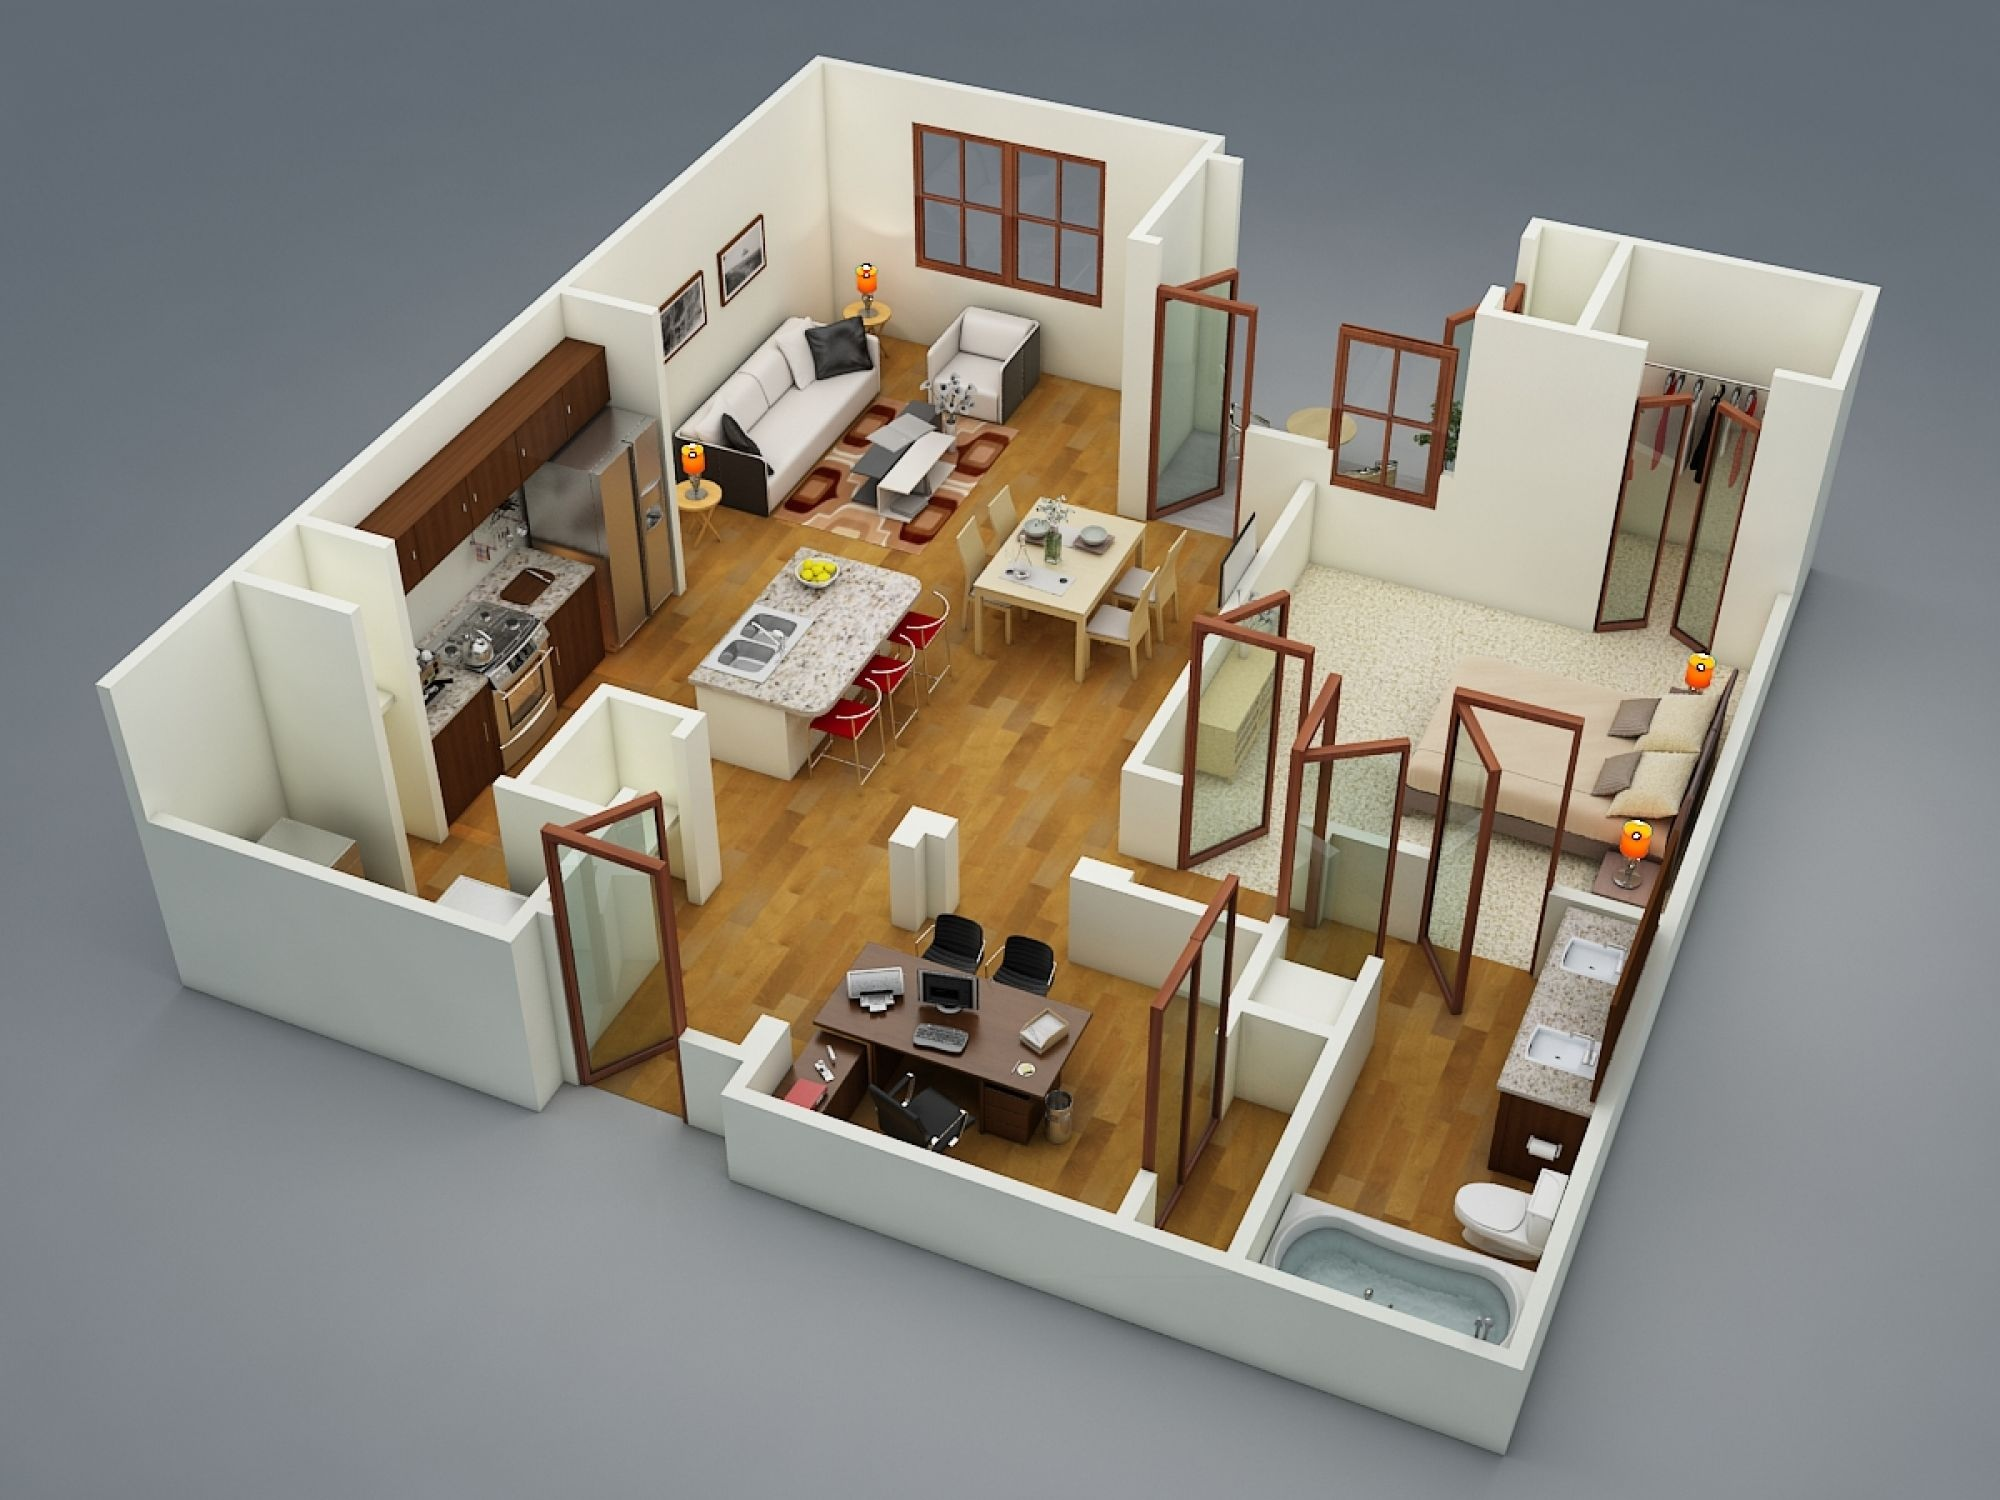 1 bedroom apartmenthouse plans - Houses Plans